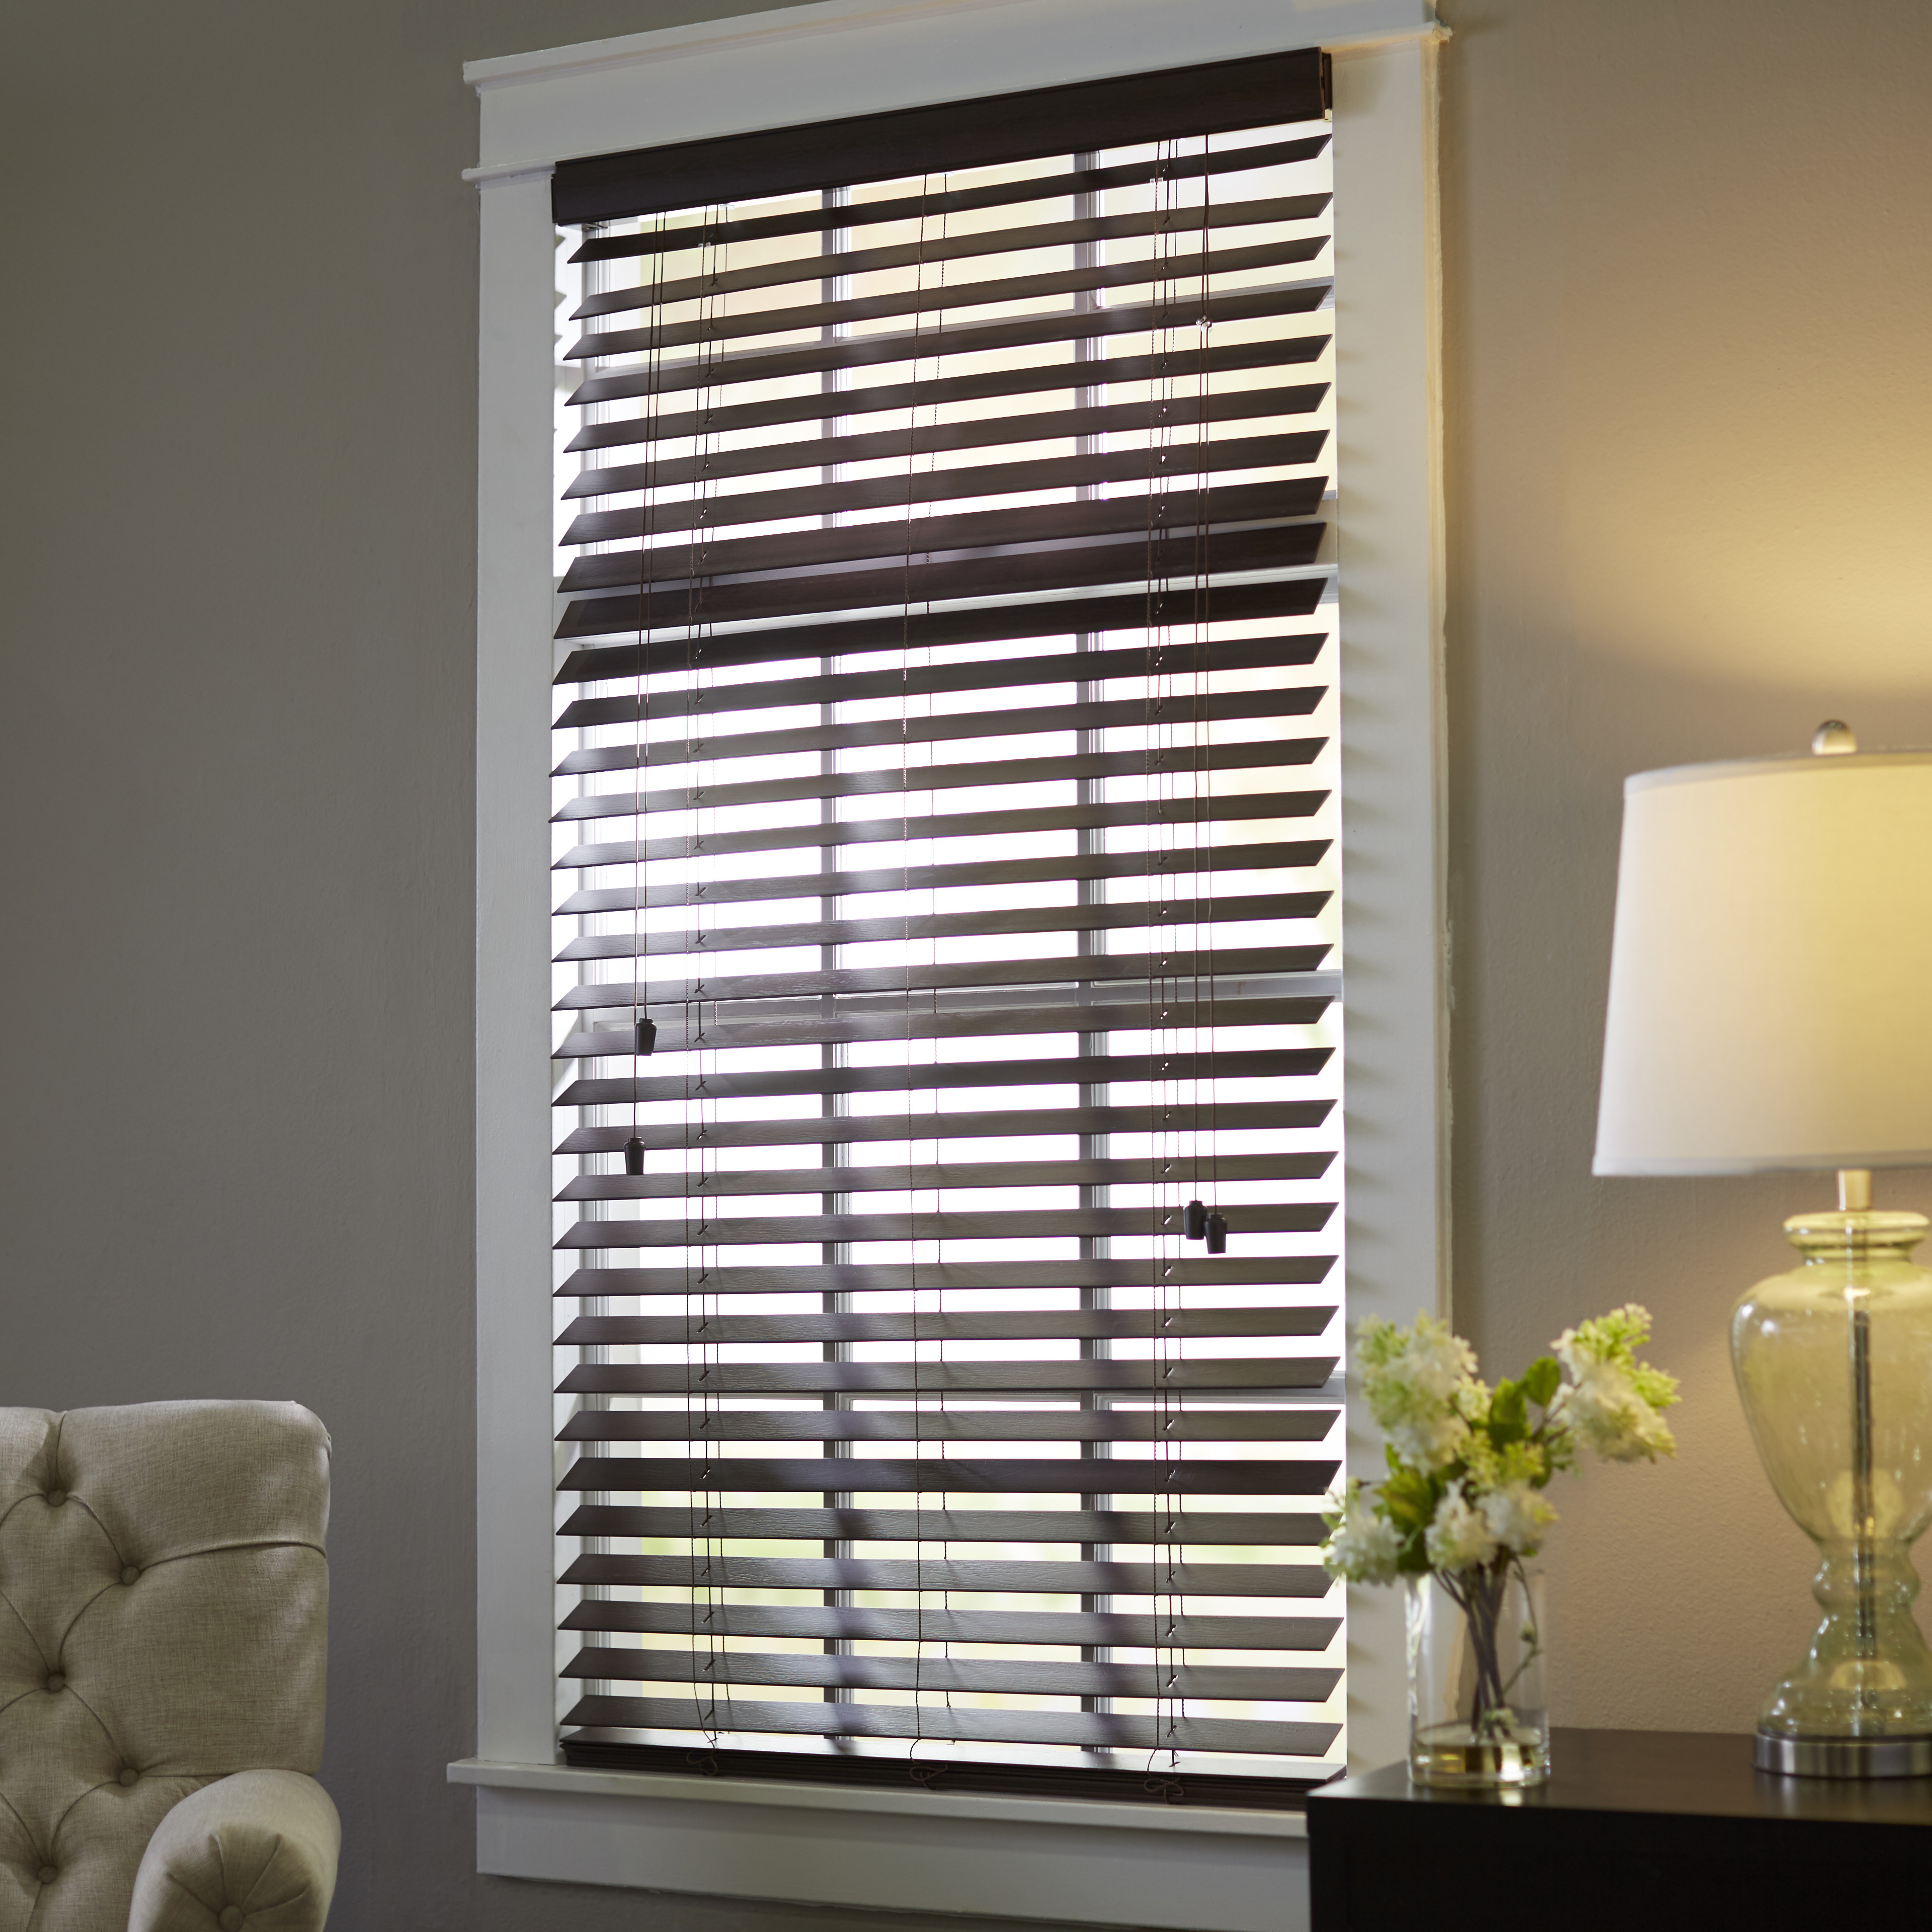 Menards Landscape Rock | Menards Window Blinds | Menars Store